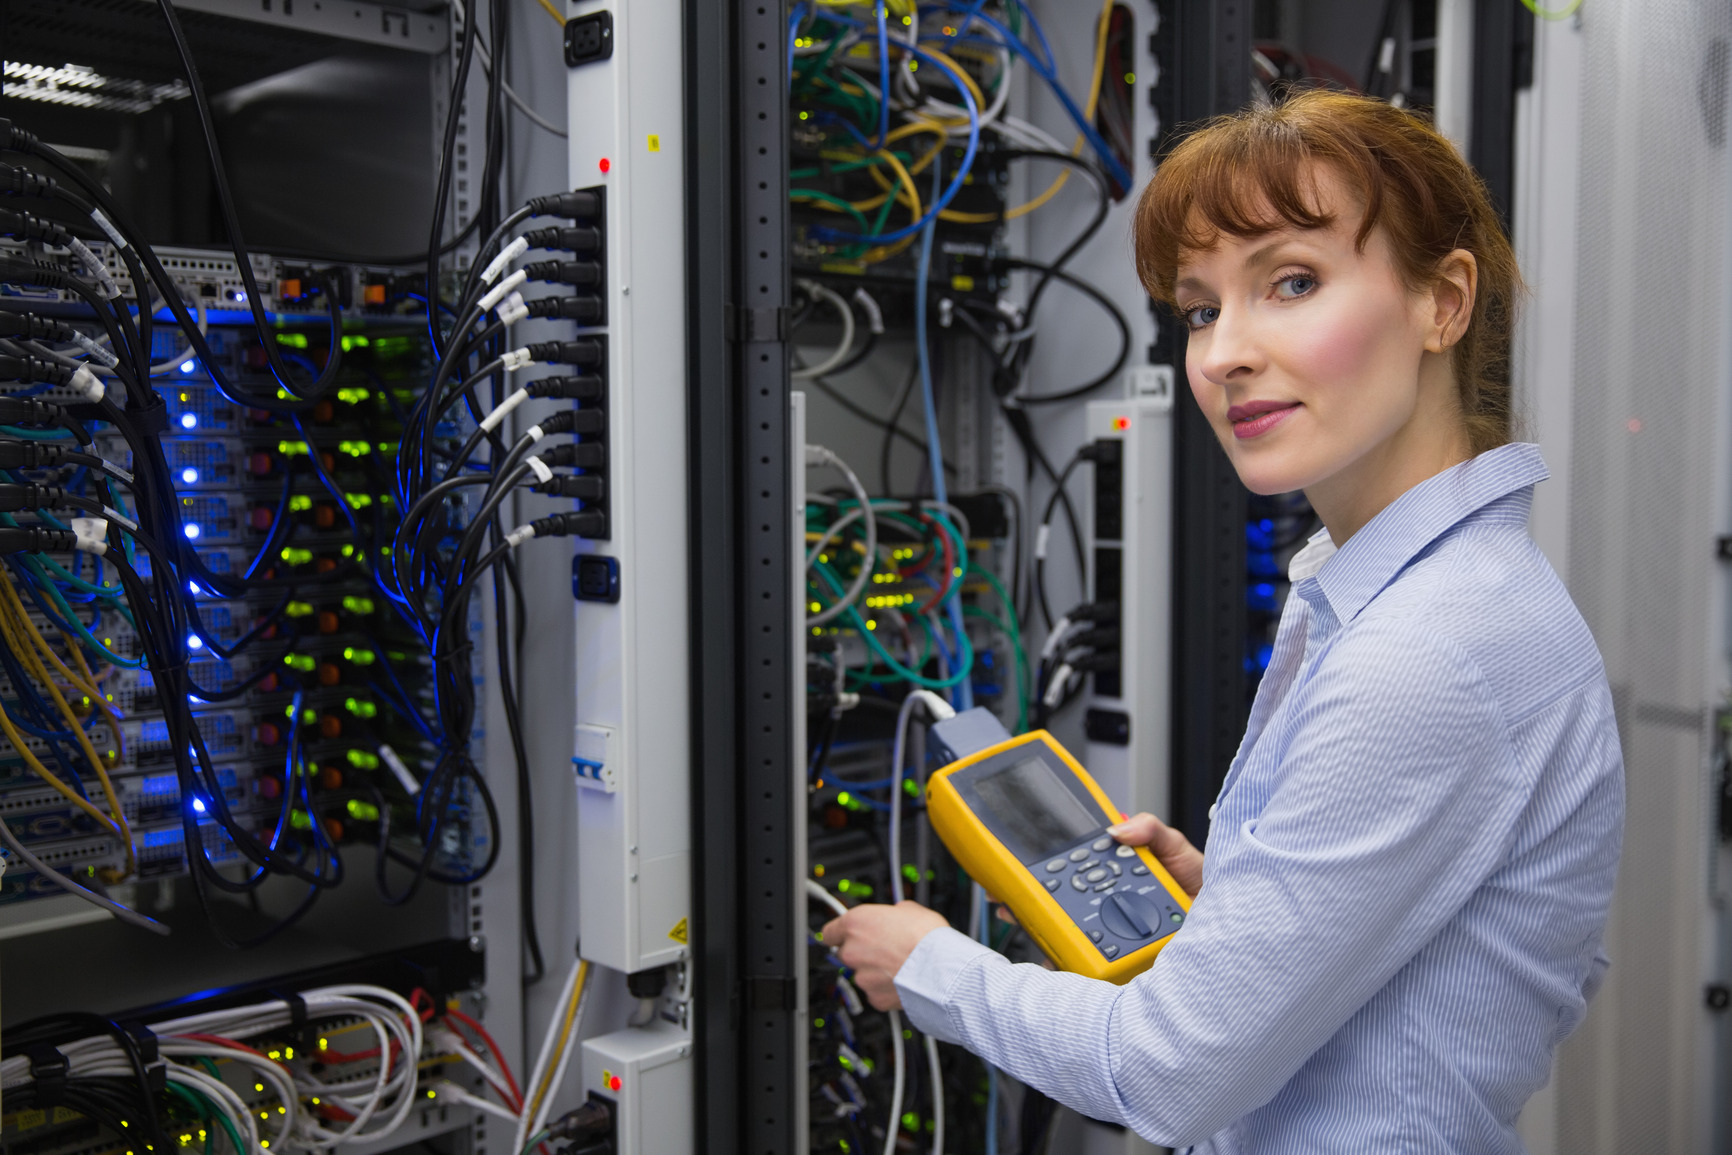 photodune-8667586-technician-using-digital-cable-analyzer-on-server-in-large-data-center-m